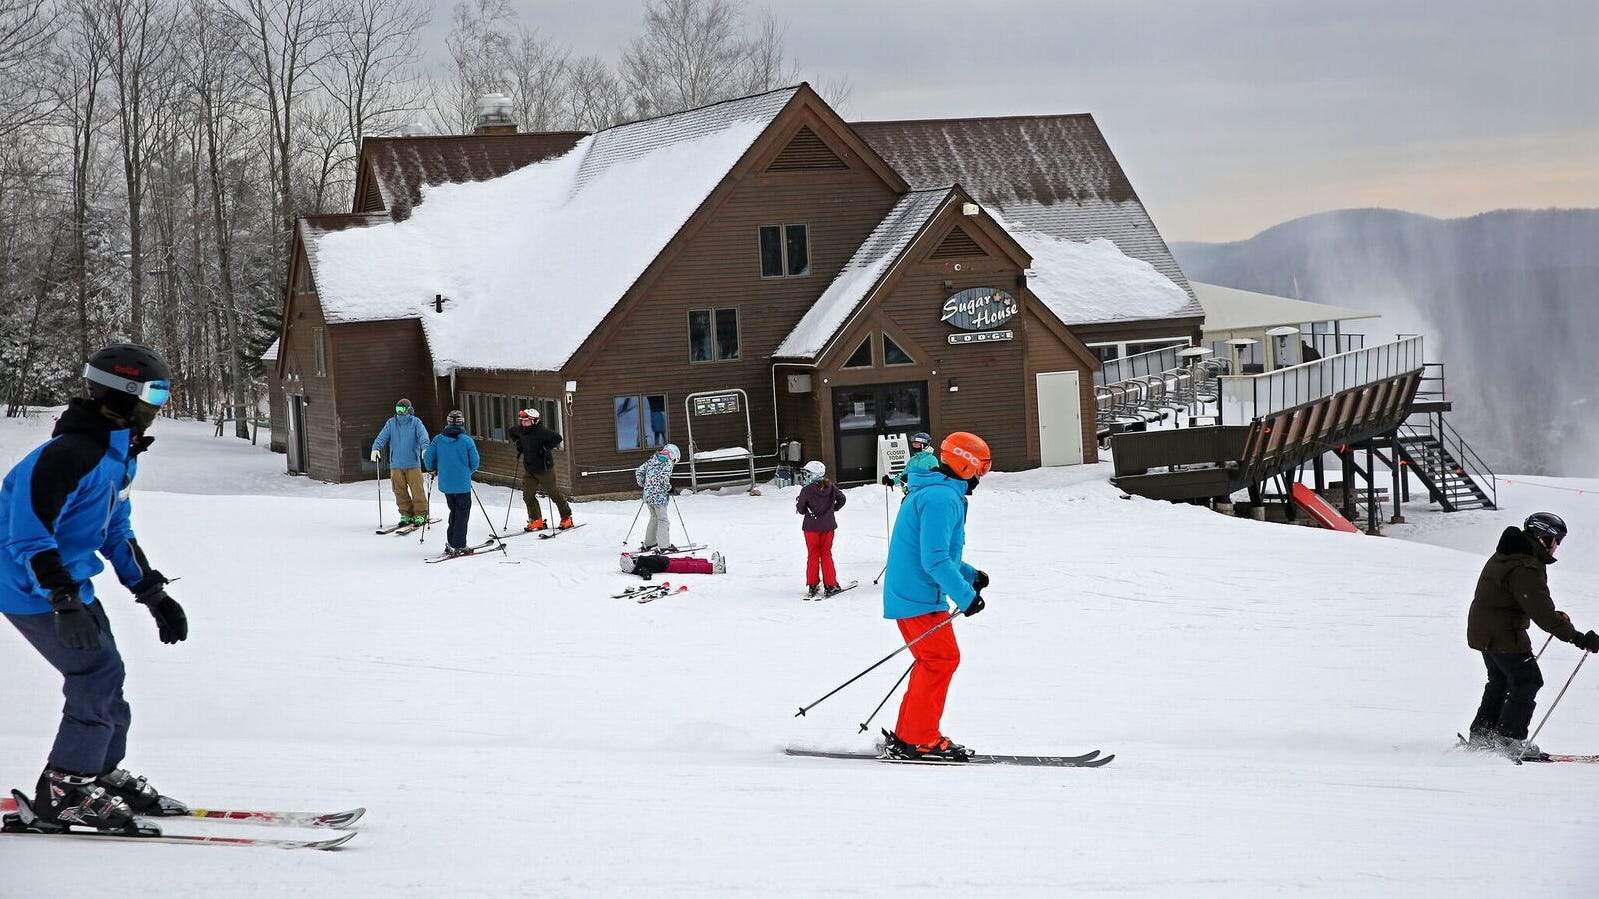 skiing: vermont's okemo mountain now part of vail resorts